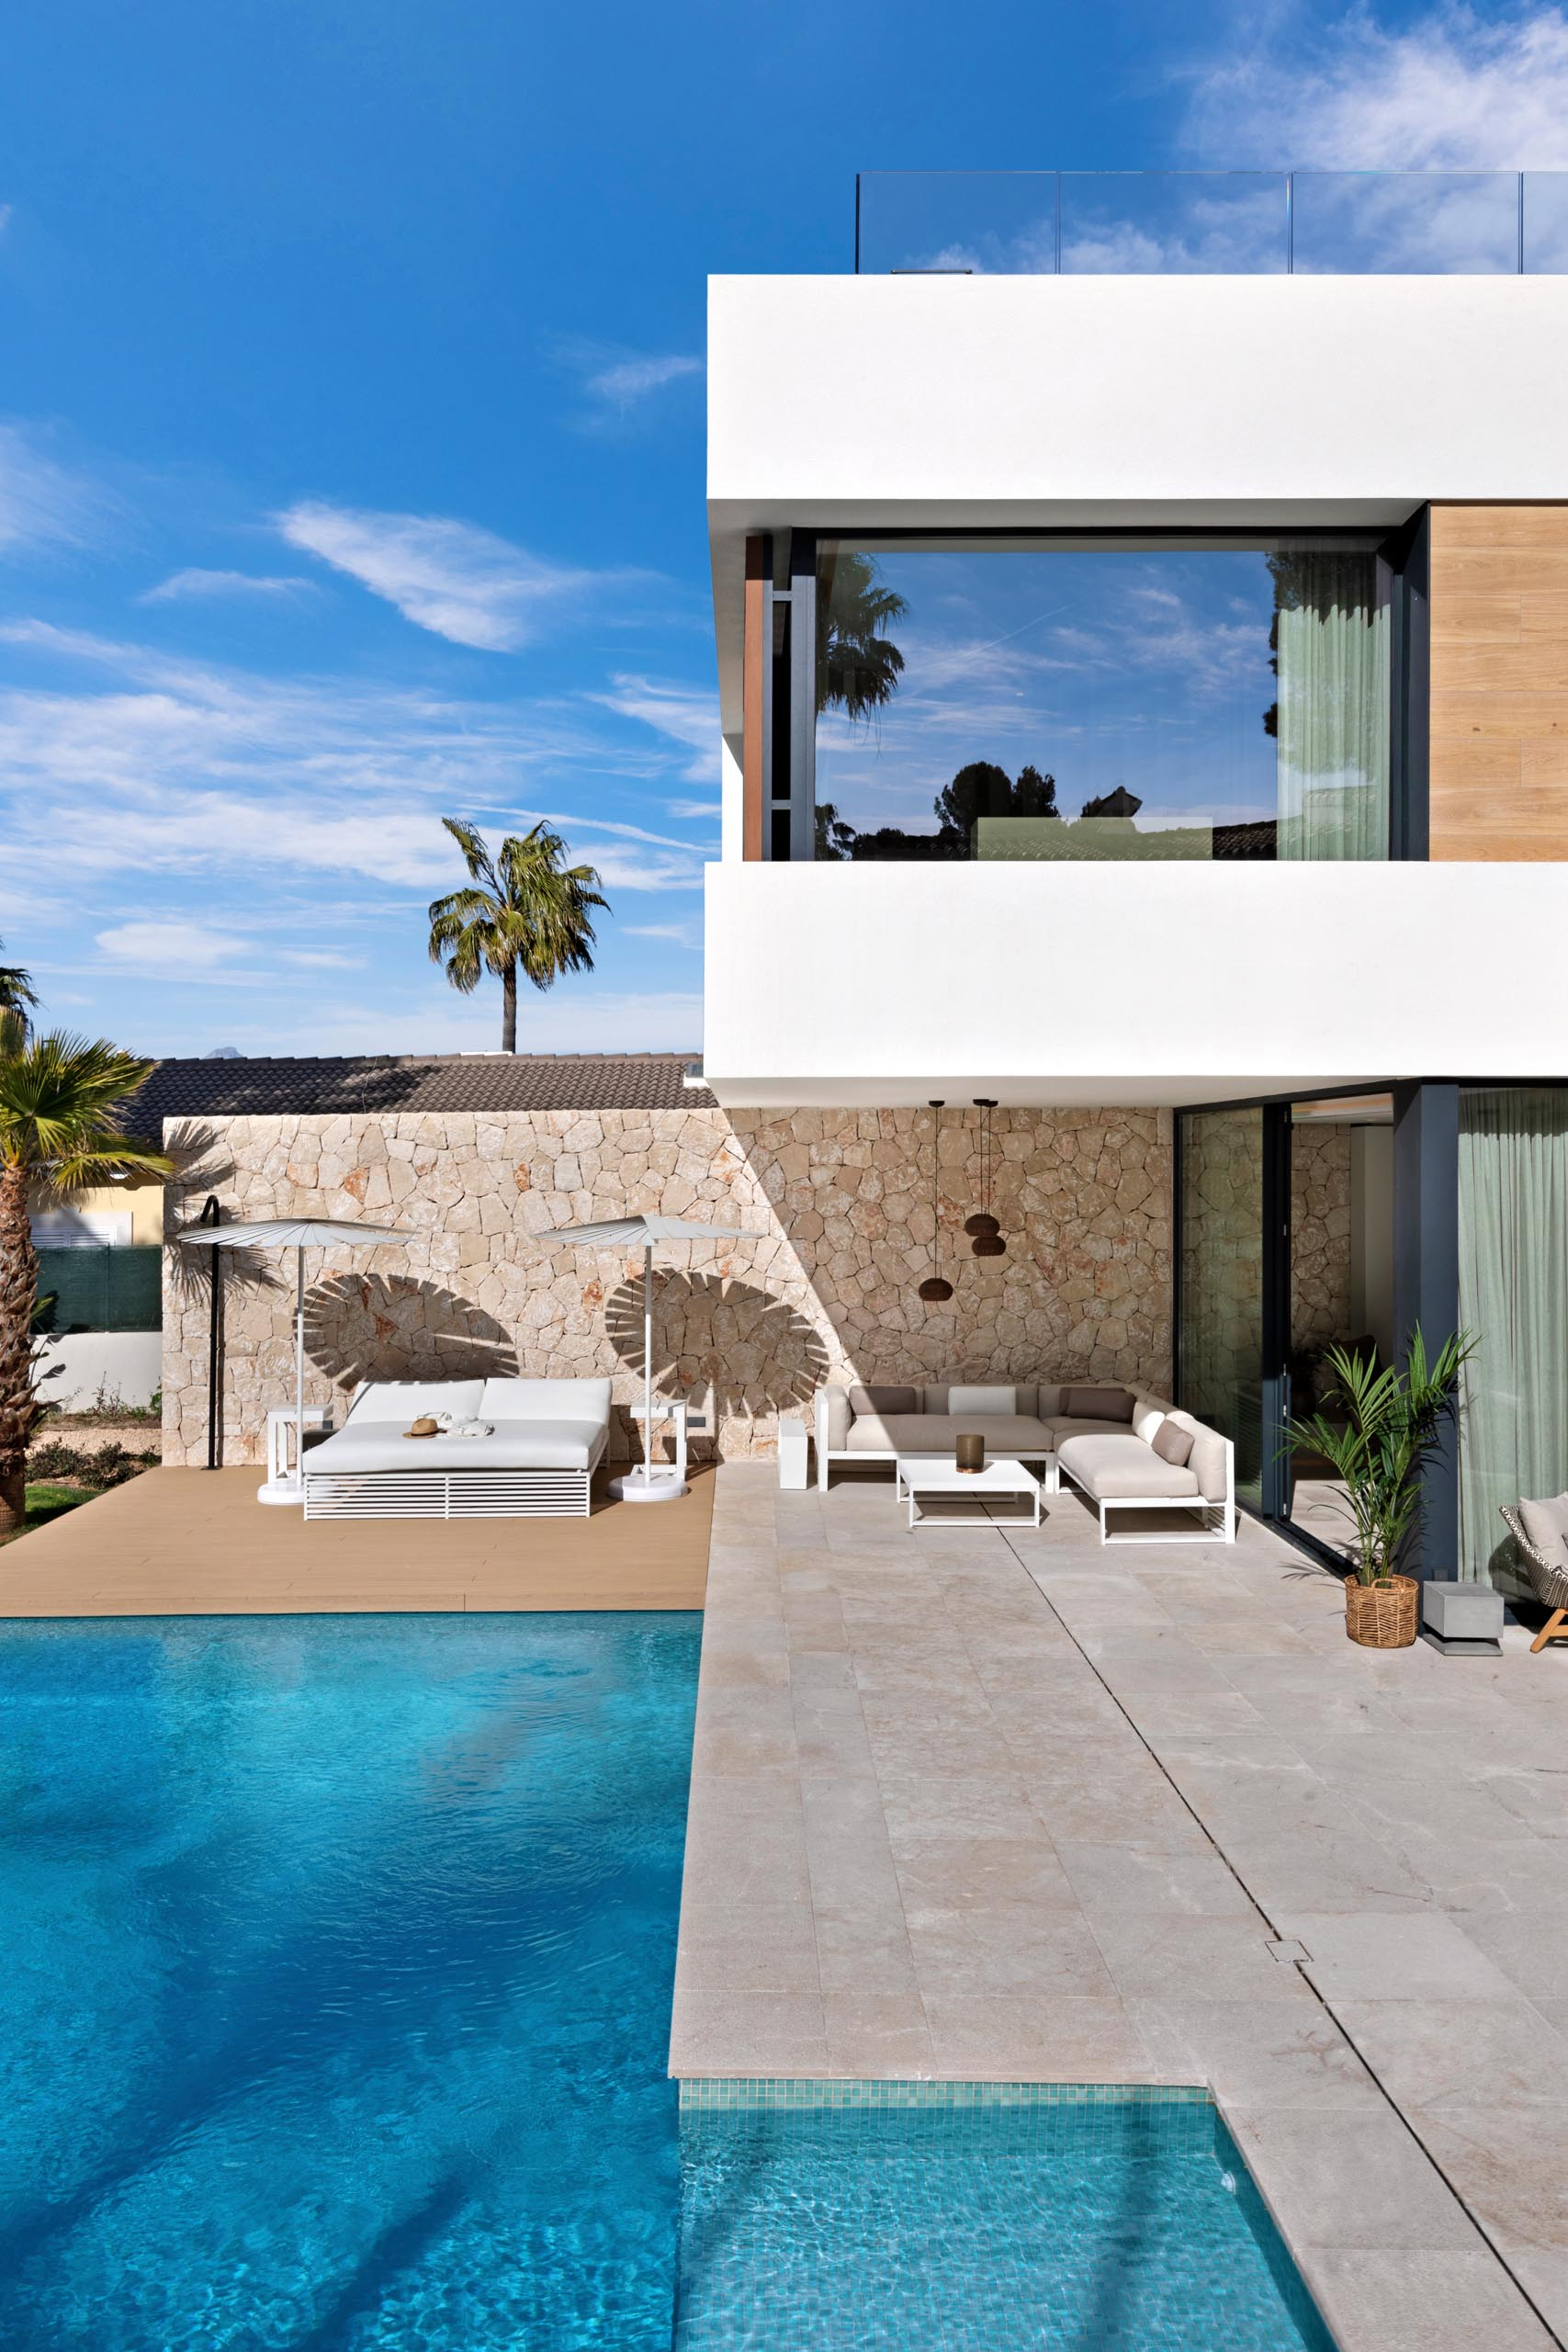 A modern home with a swimming pool and deck, a stone wall, and partially covered patio designed for outdoor entertaining.